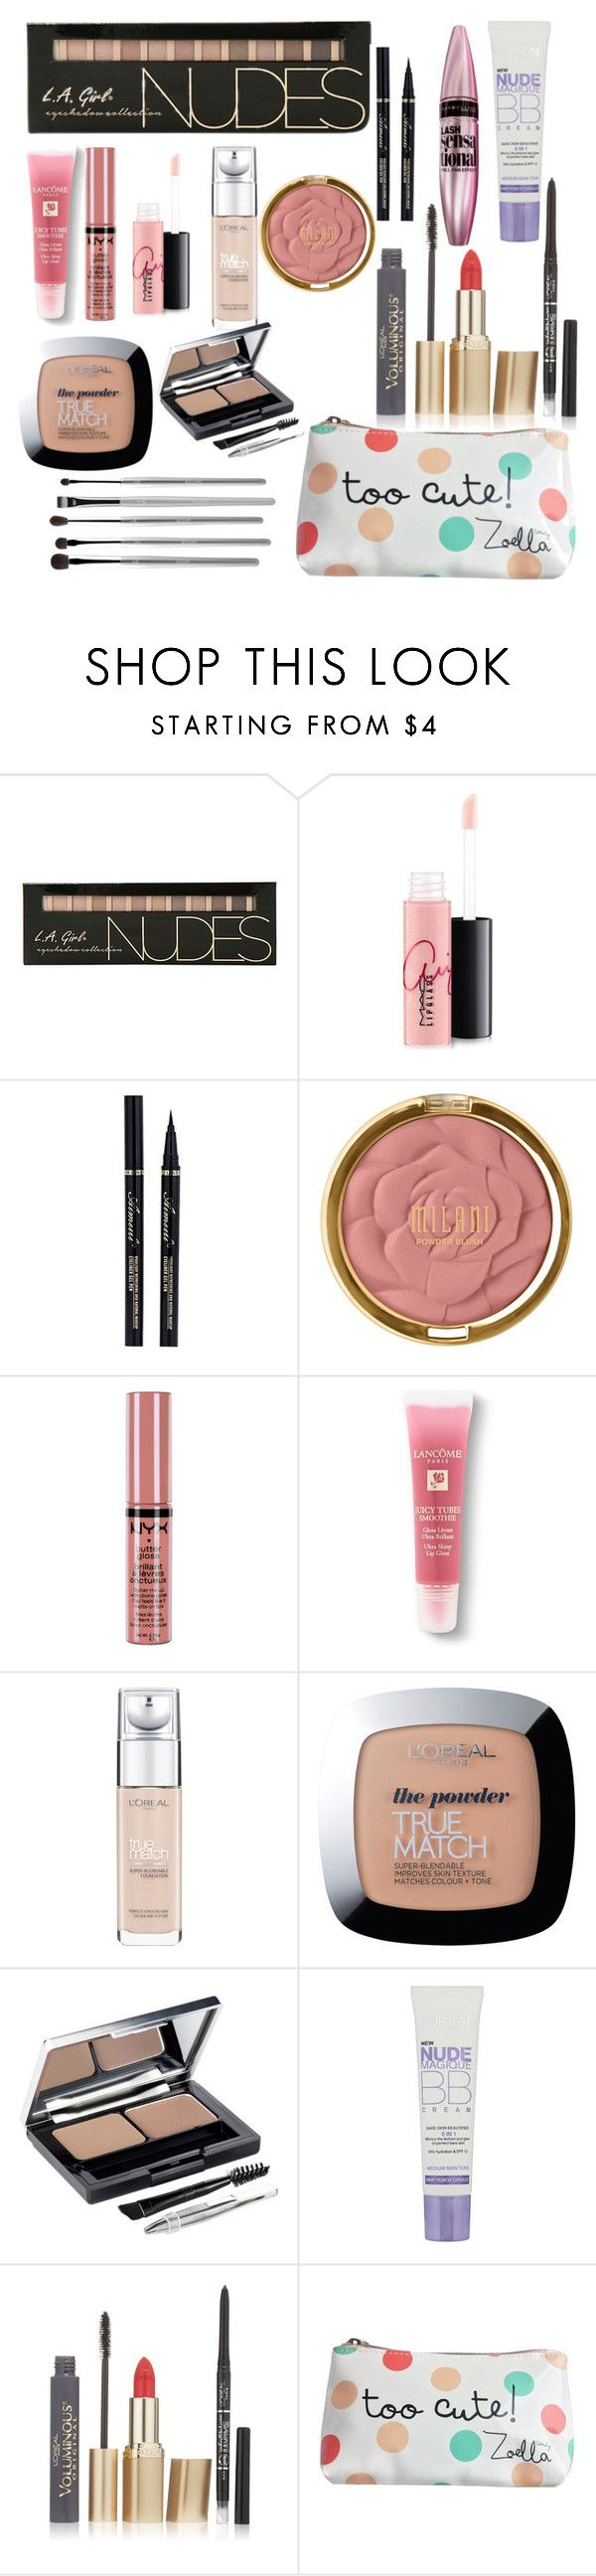 """""""Teen make up starter kit ❤️"""" by southernsass12 ❤ liked on Polyvore featuring beauty, MAC Cosmetics, Maybelline, Milani, NYX, Lancôme, L'Oréal Paris and esum"""